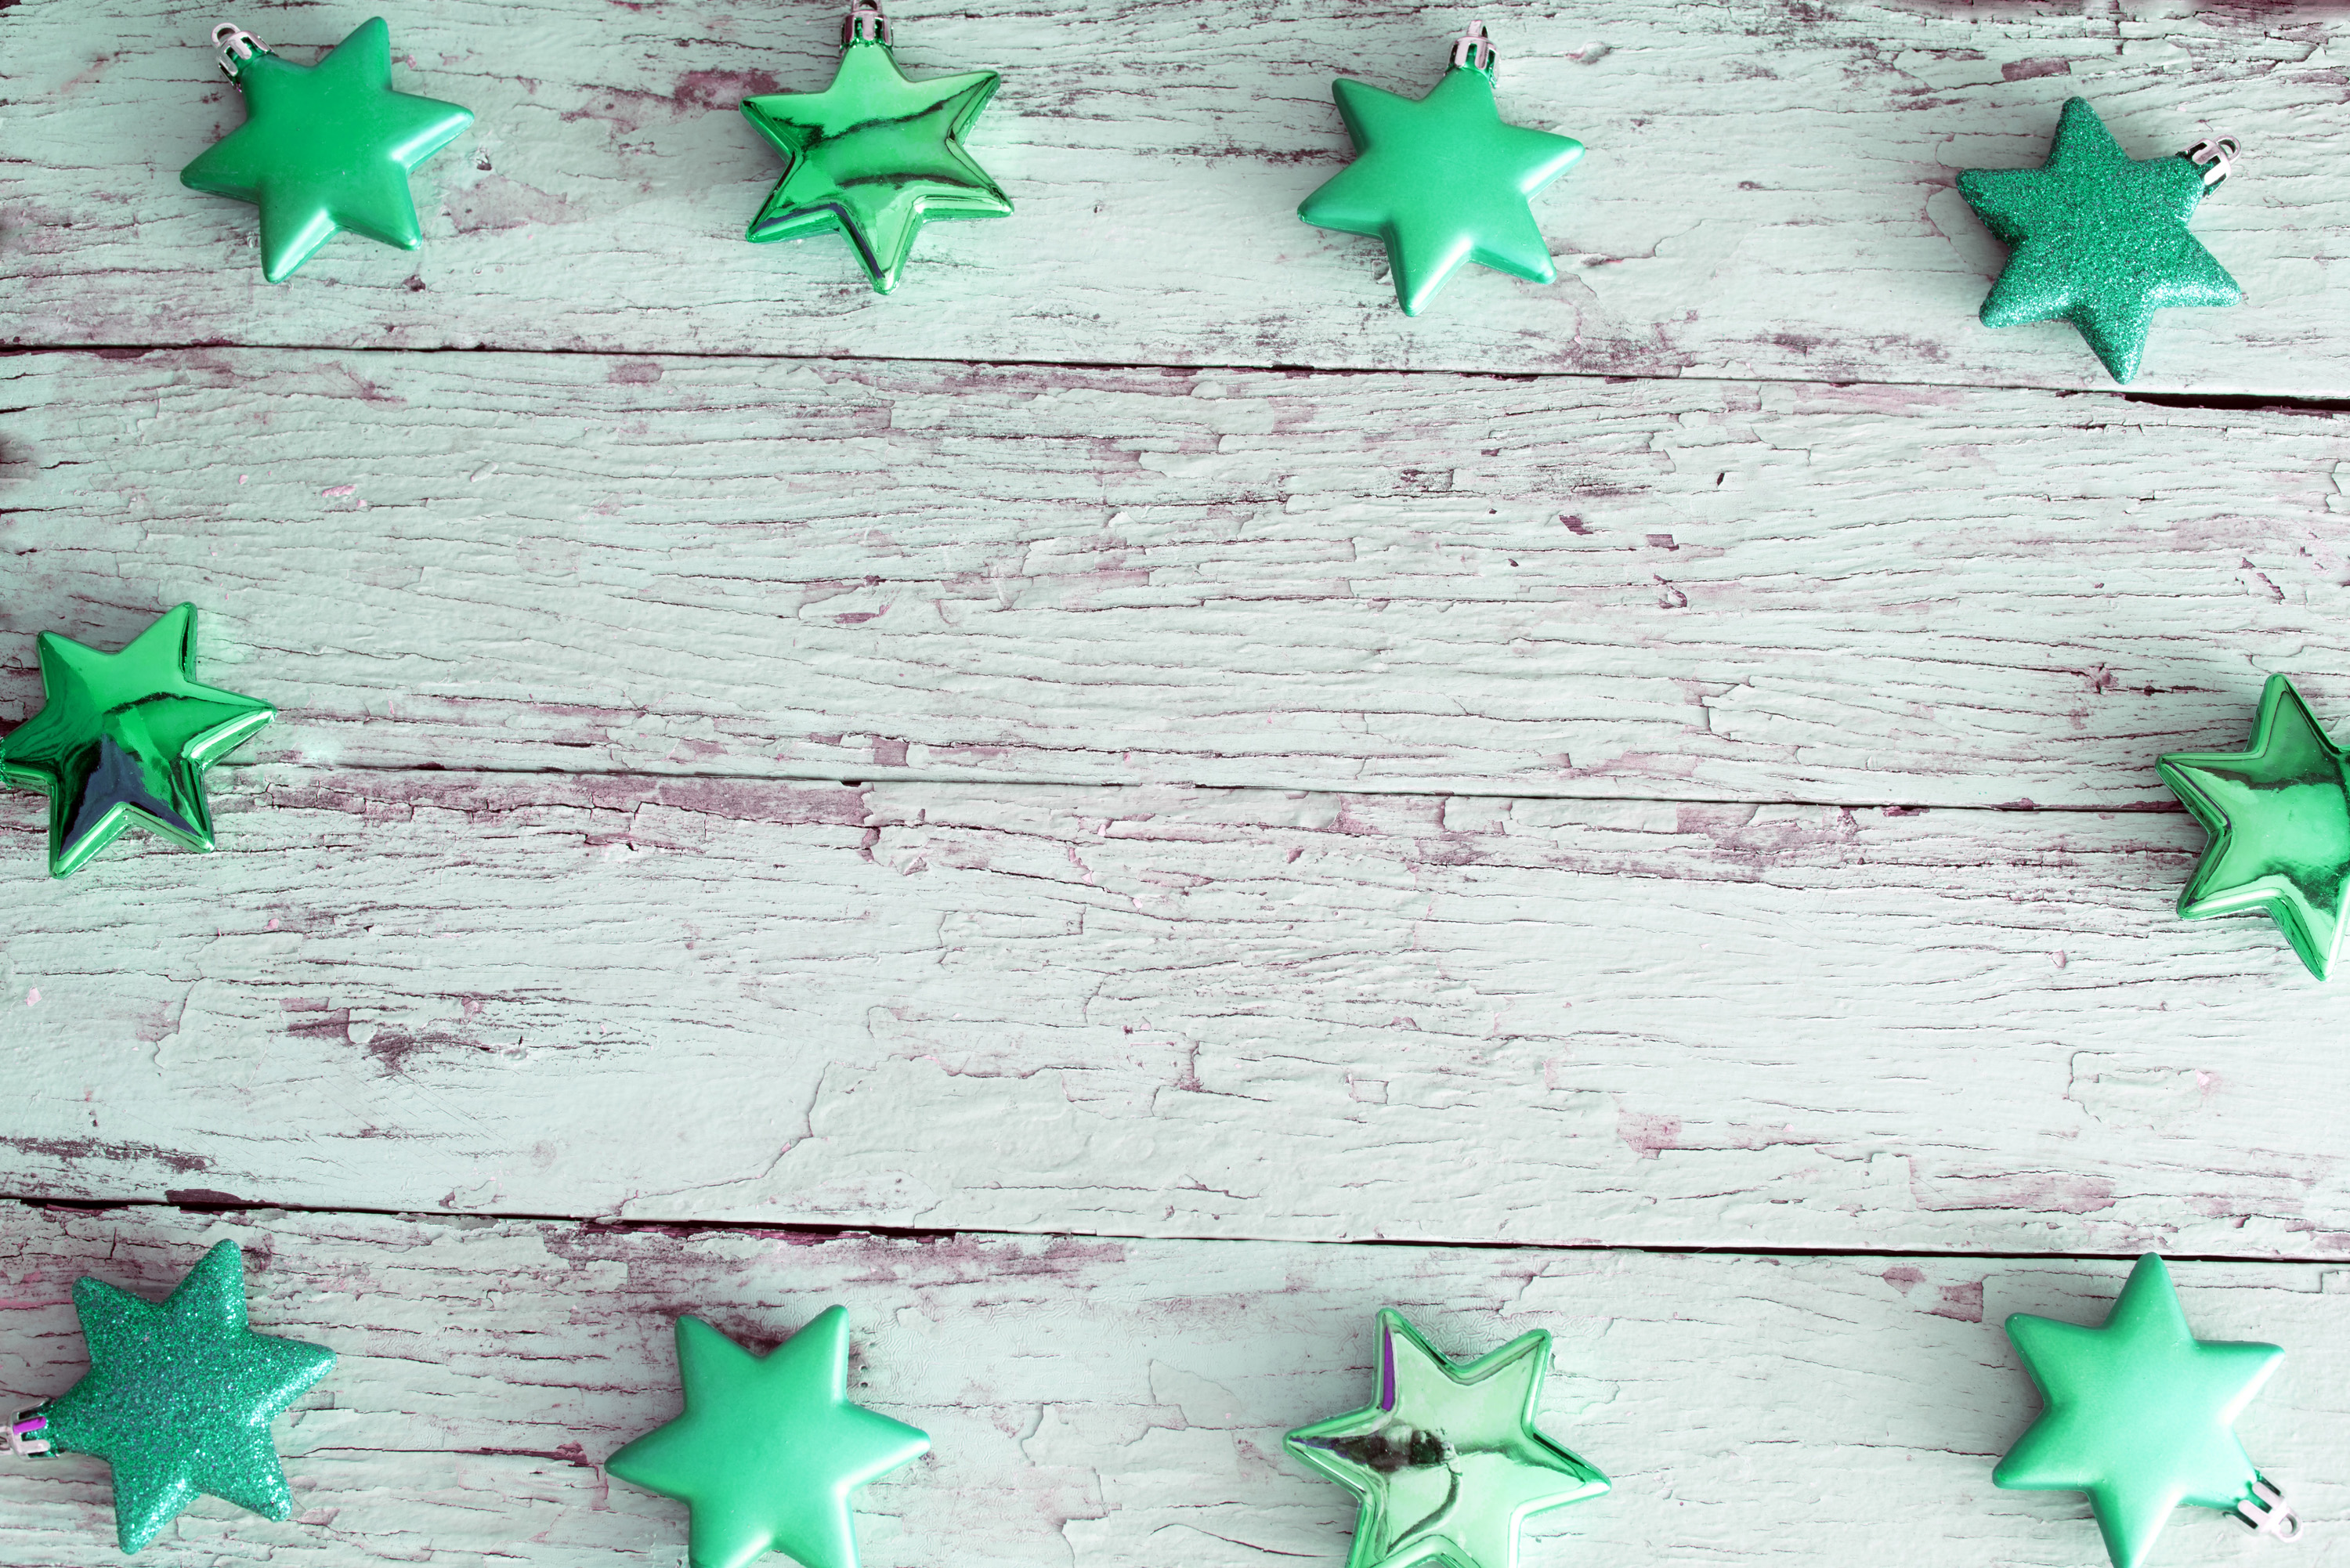 Green Christmas star border on rustic weathered white painted wood with central copy space for your holiday greeting